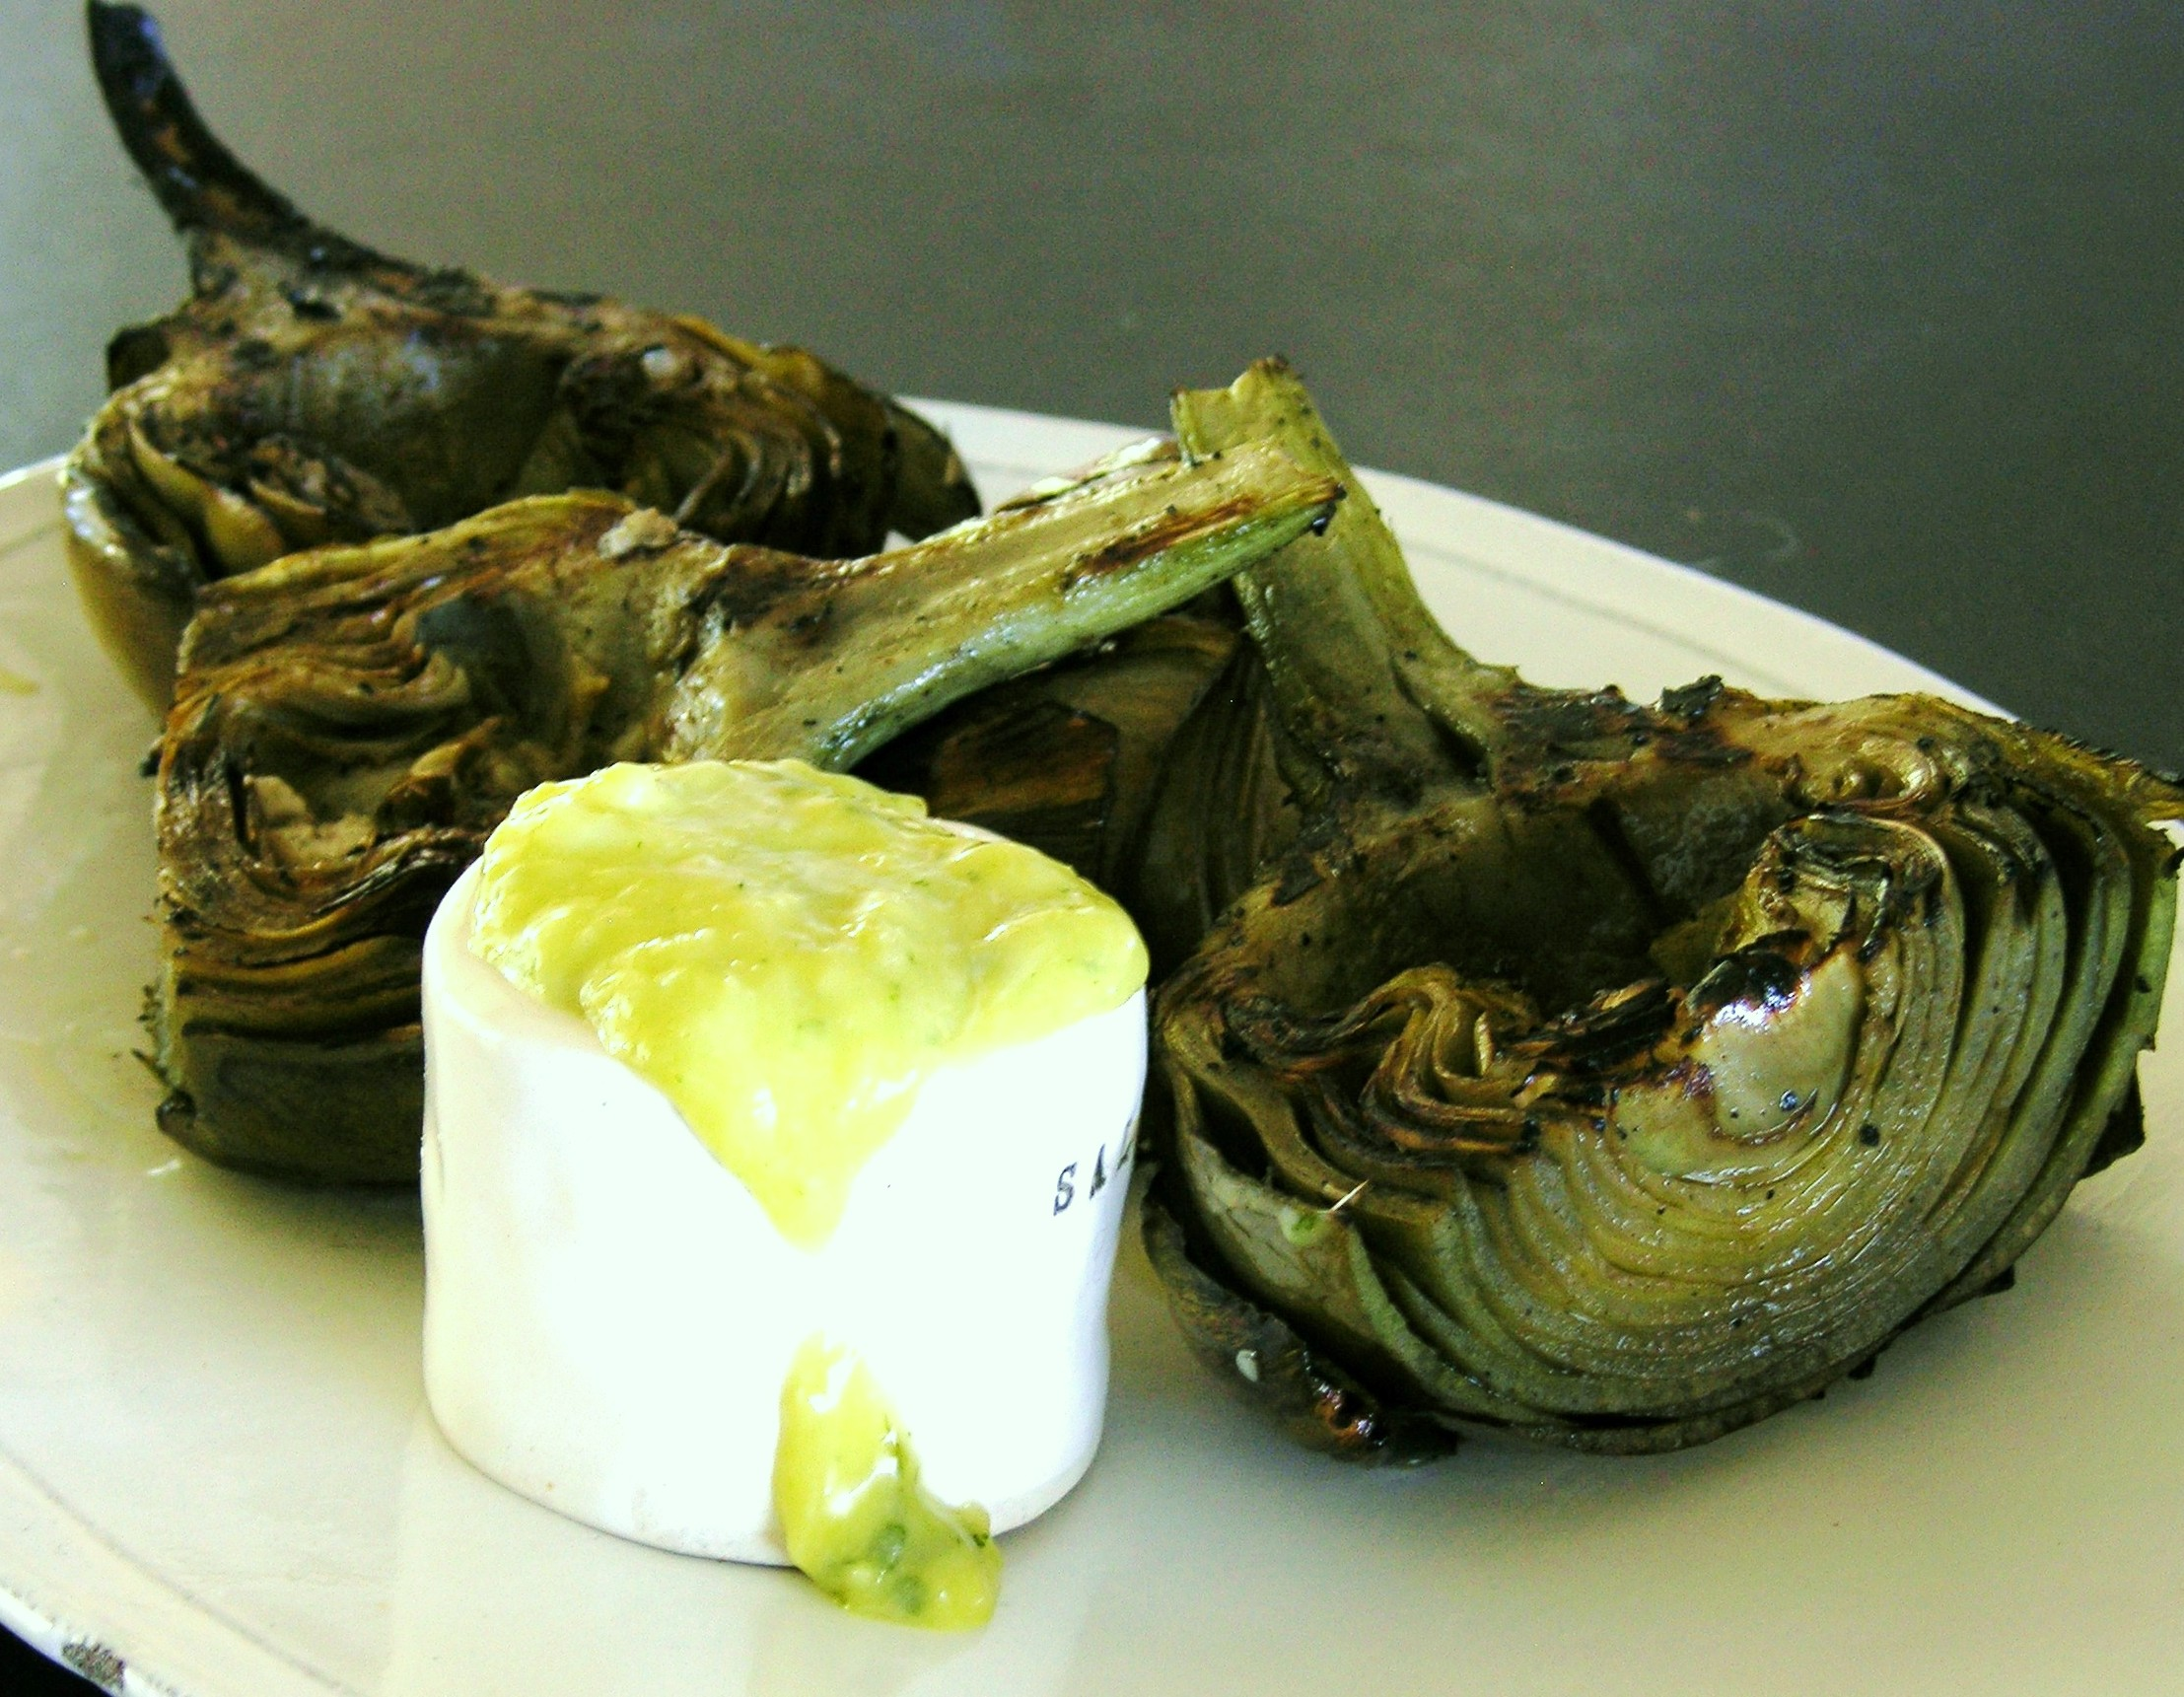 Tarragon-Lemon Aioli Served with Grilled Artichokes